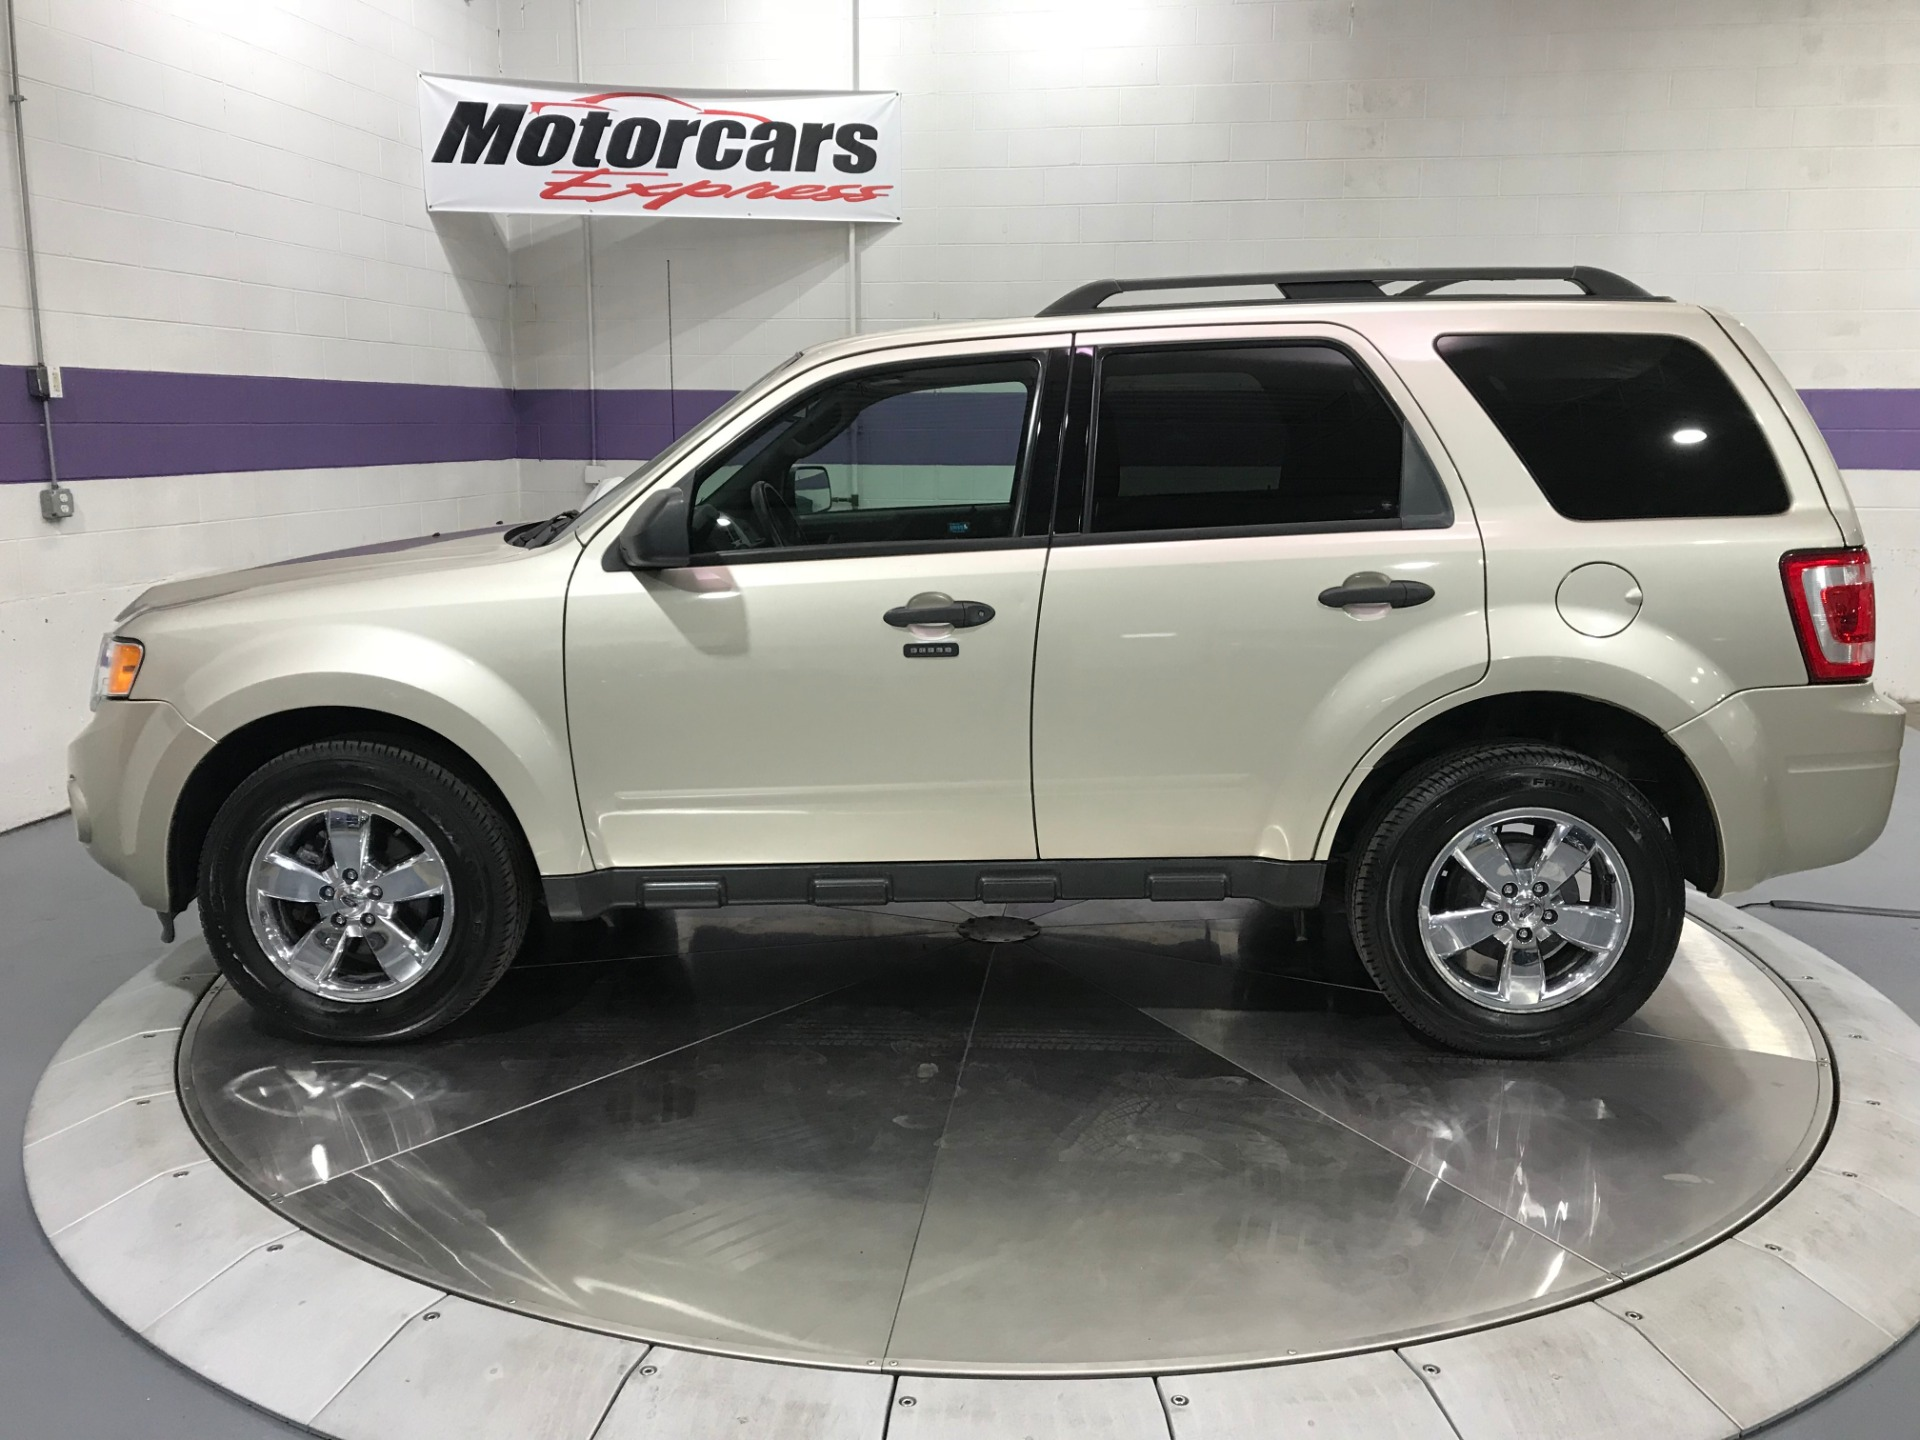 Ford Escape For Sale Near Me >> 2010 Ford Escape XLT AWD Stock # 24333 for sale near Alsip ...